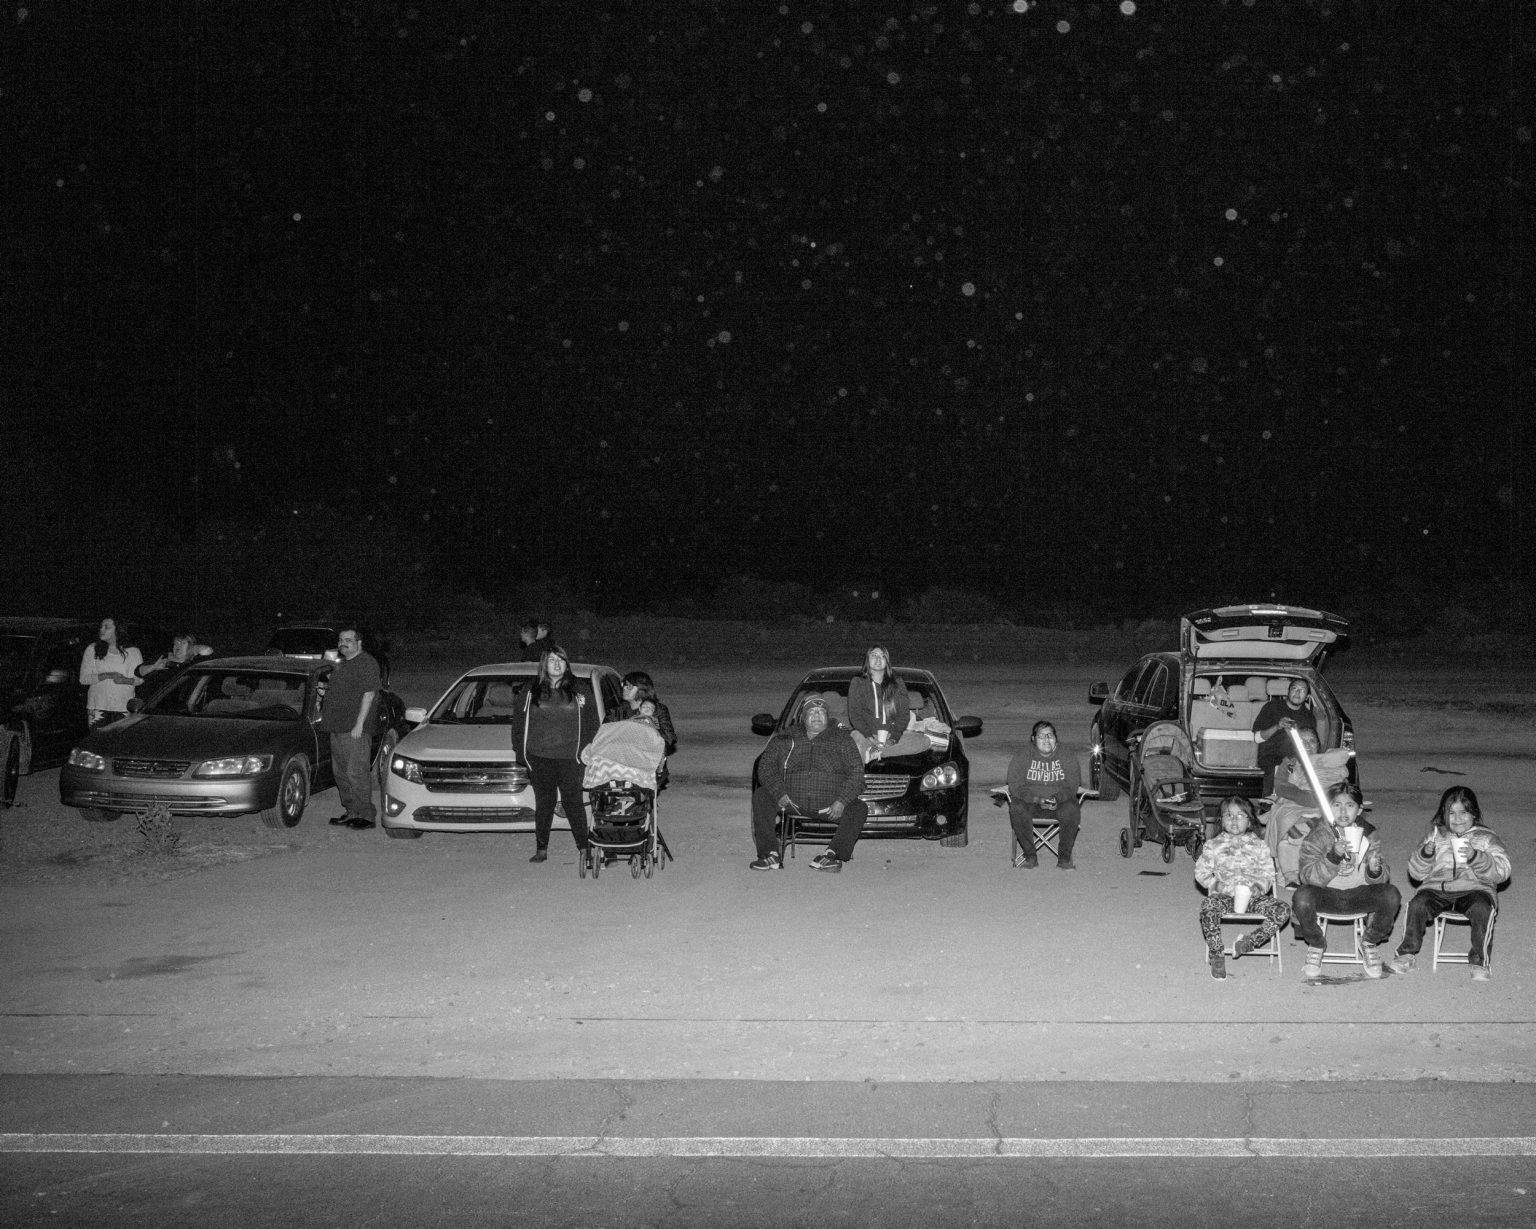 Families waiting for the Christmas parade on the  main street of the Ak Chin Native reservation. Maricopa, Arizona. December 2017.